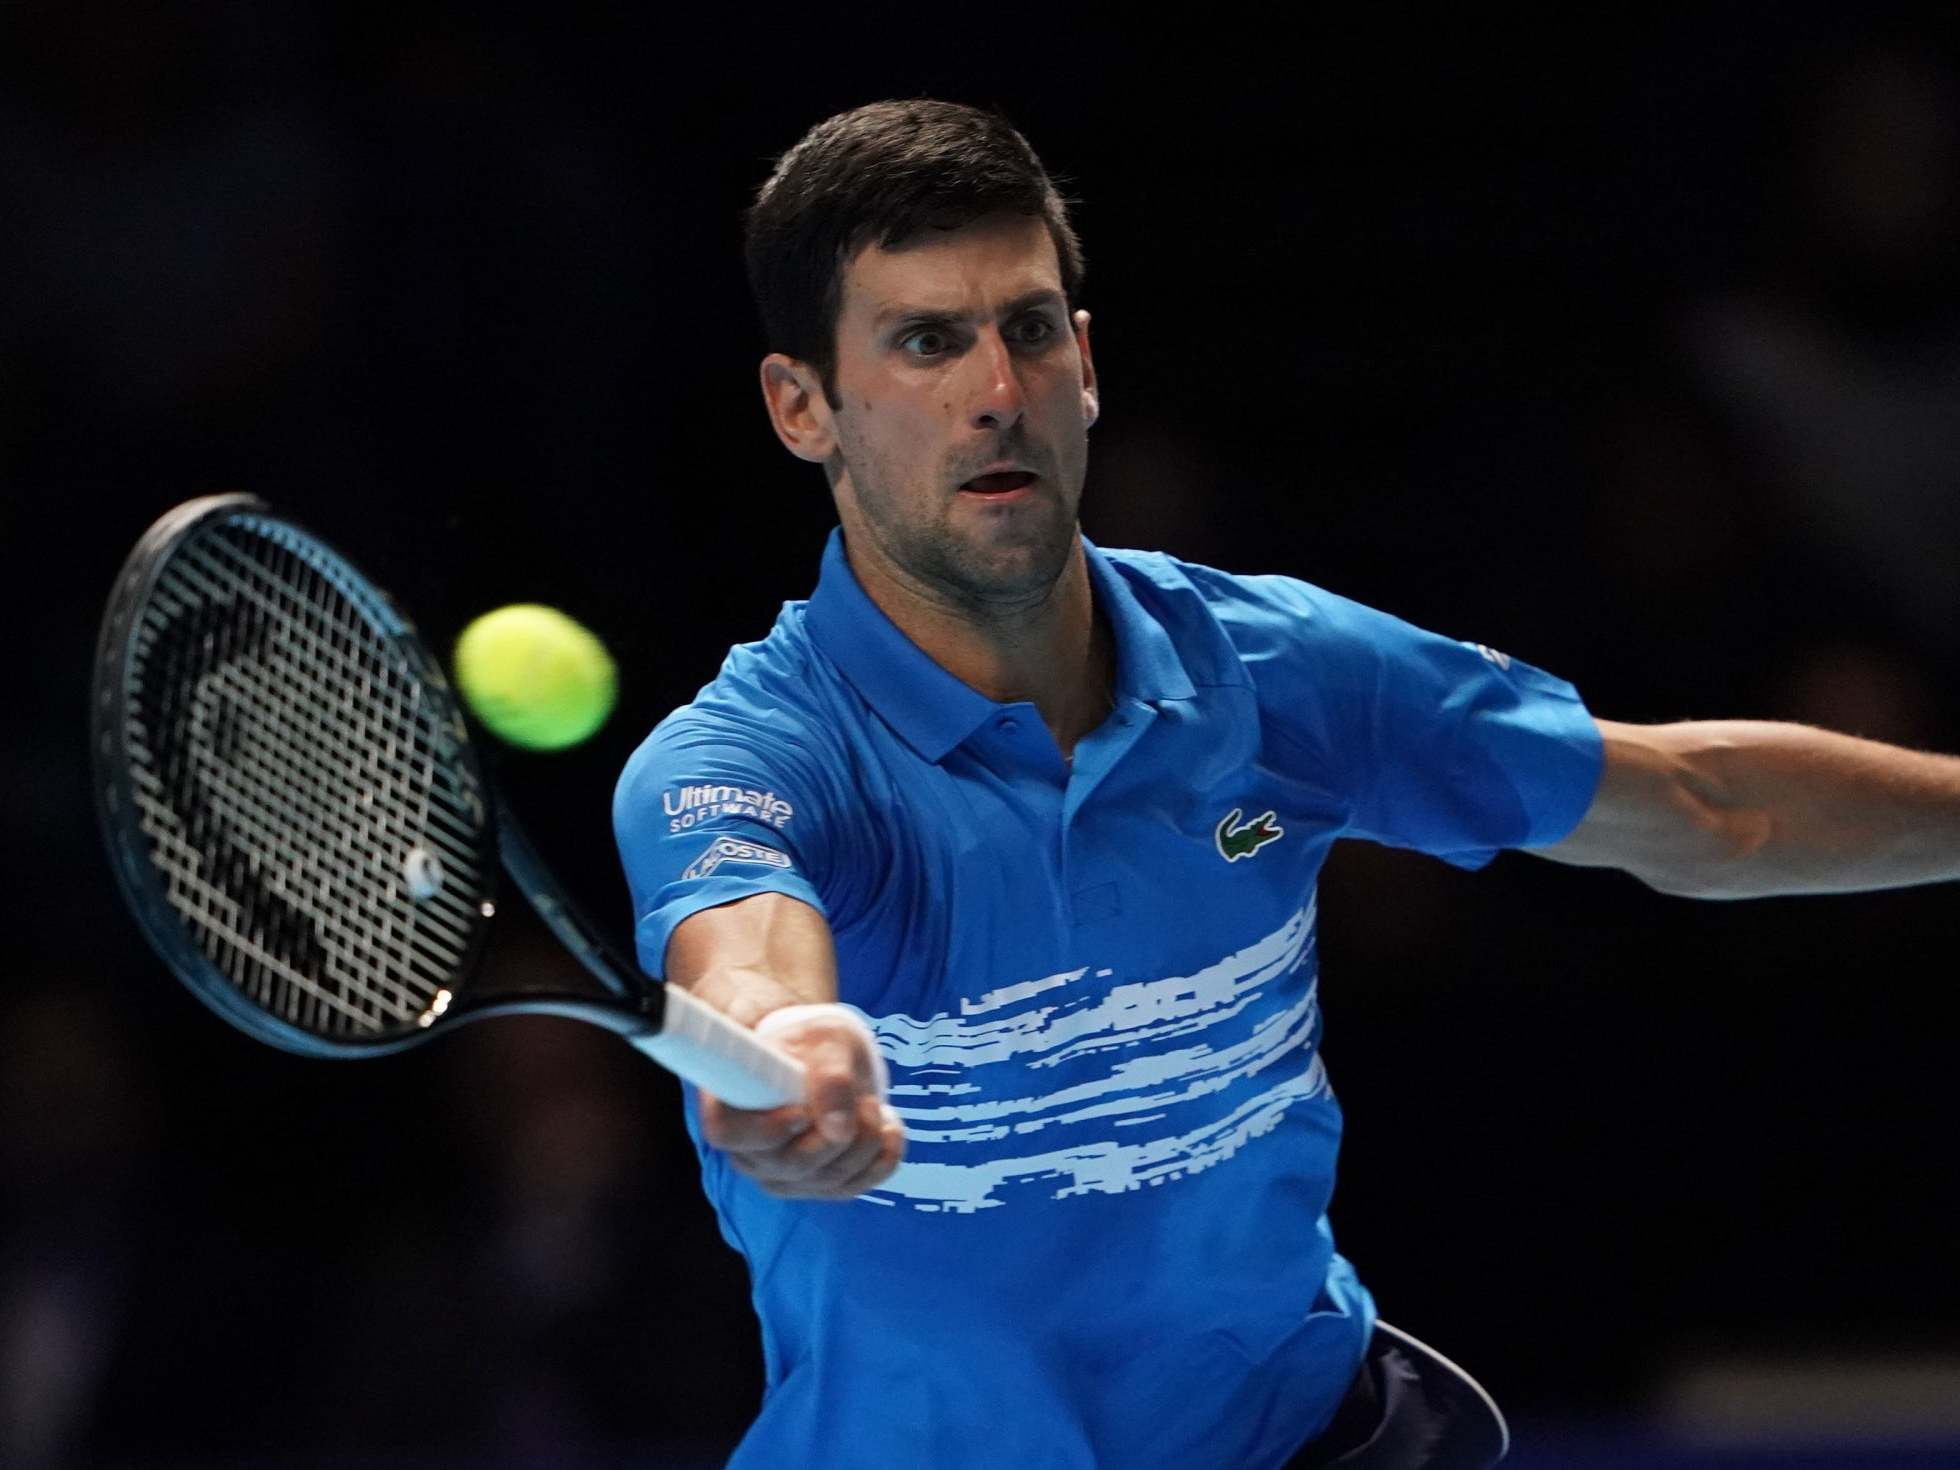 Novak Djokovic To Play Us Open Despite Coronavirus Fears Surrounding Event The Independent The Independent